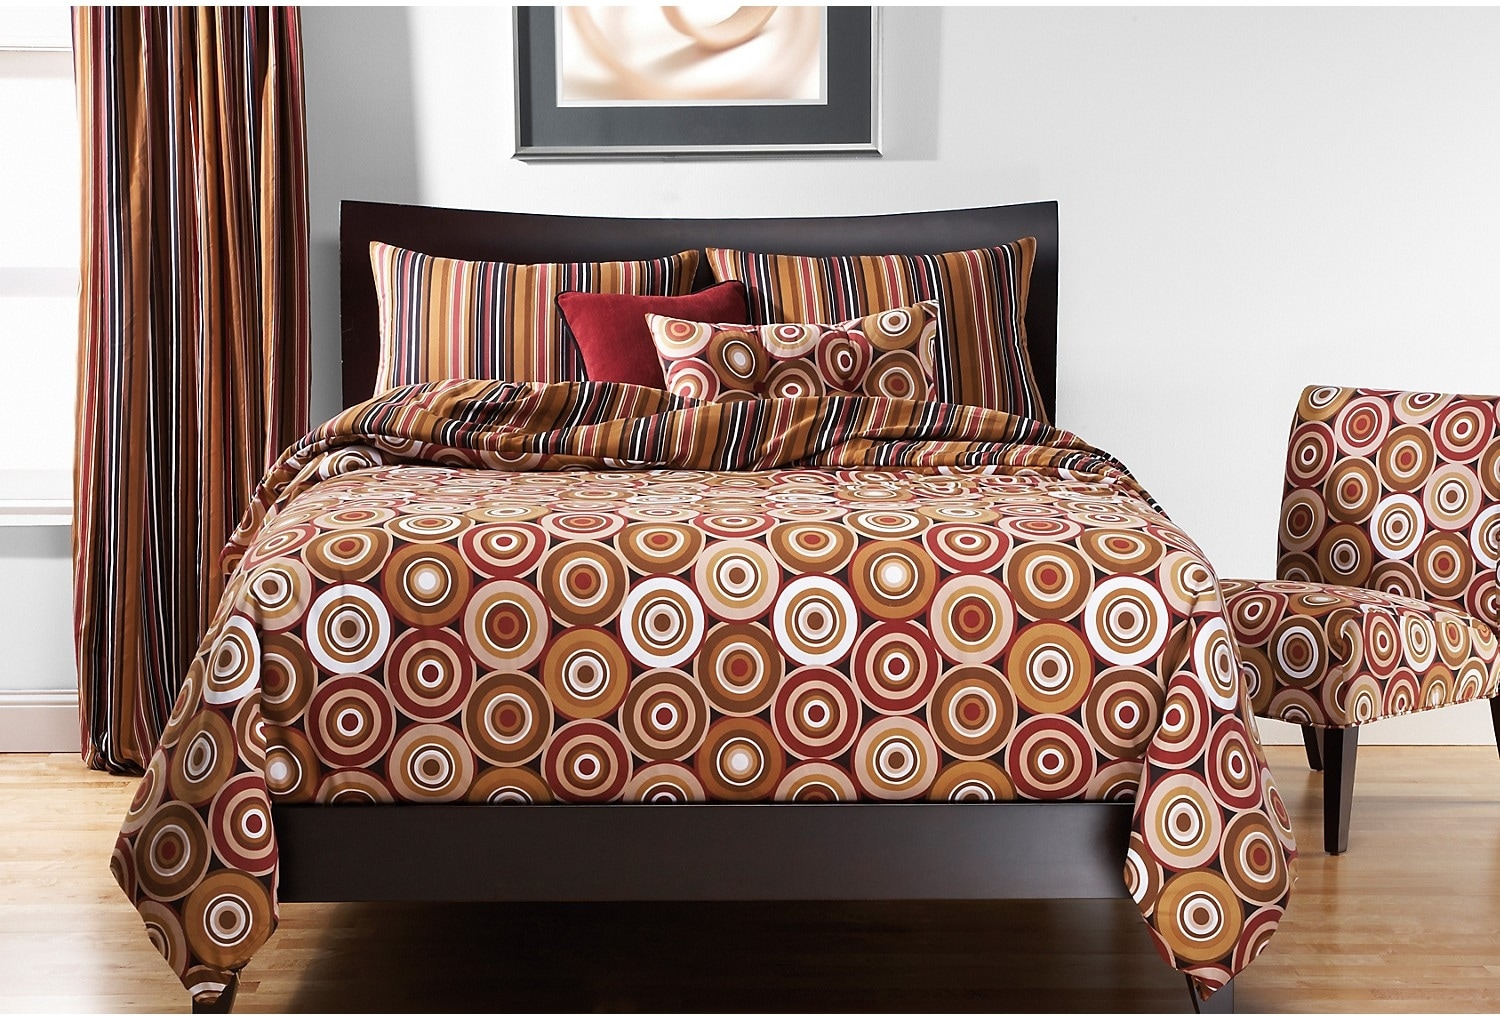 Rocking Around Reversible 4 Piece Queen Duvet Cover Set